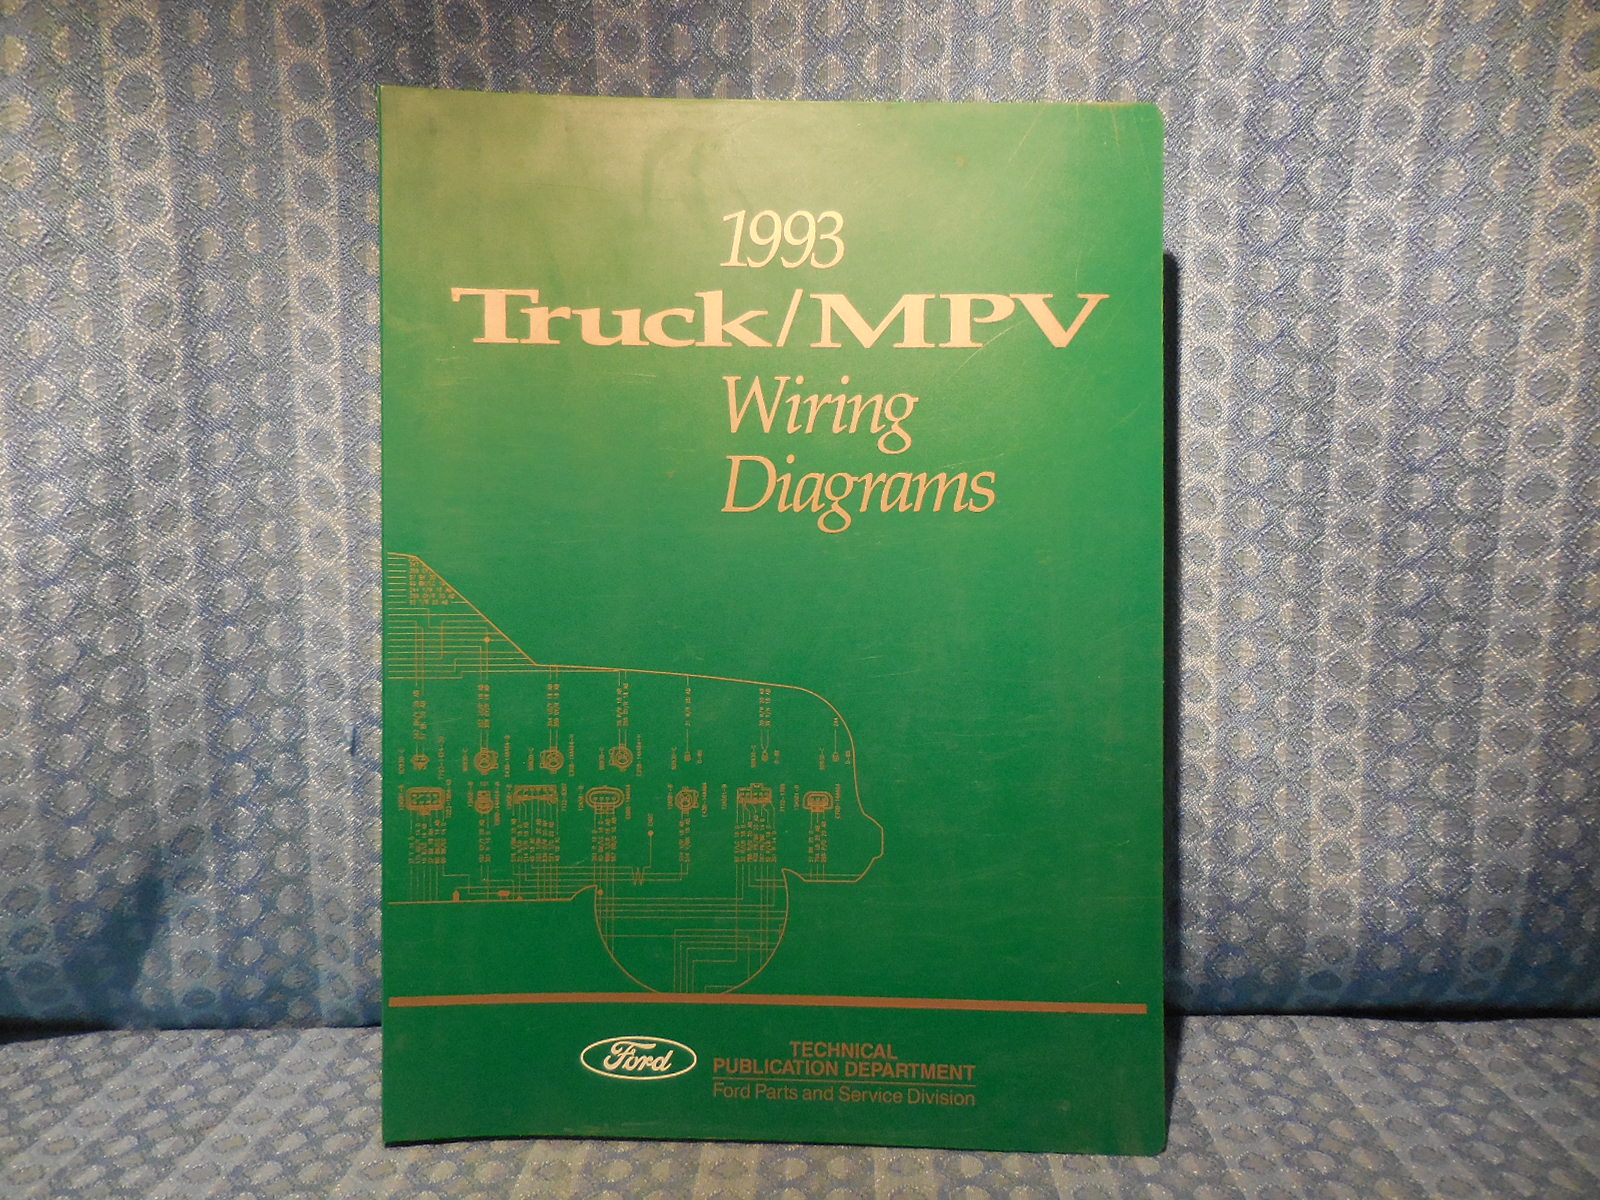 1993 Ford Truck Oem Wiring Diagrams F150 800 Ranger Econoline L F250 Diagram Series Explorer